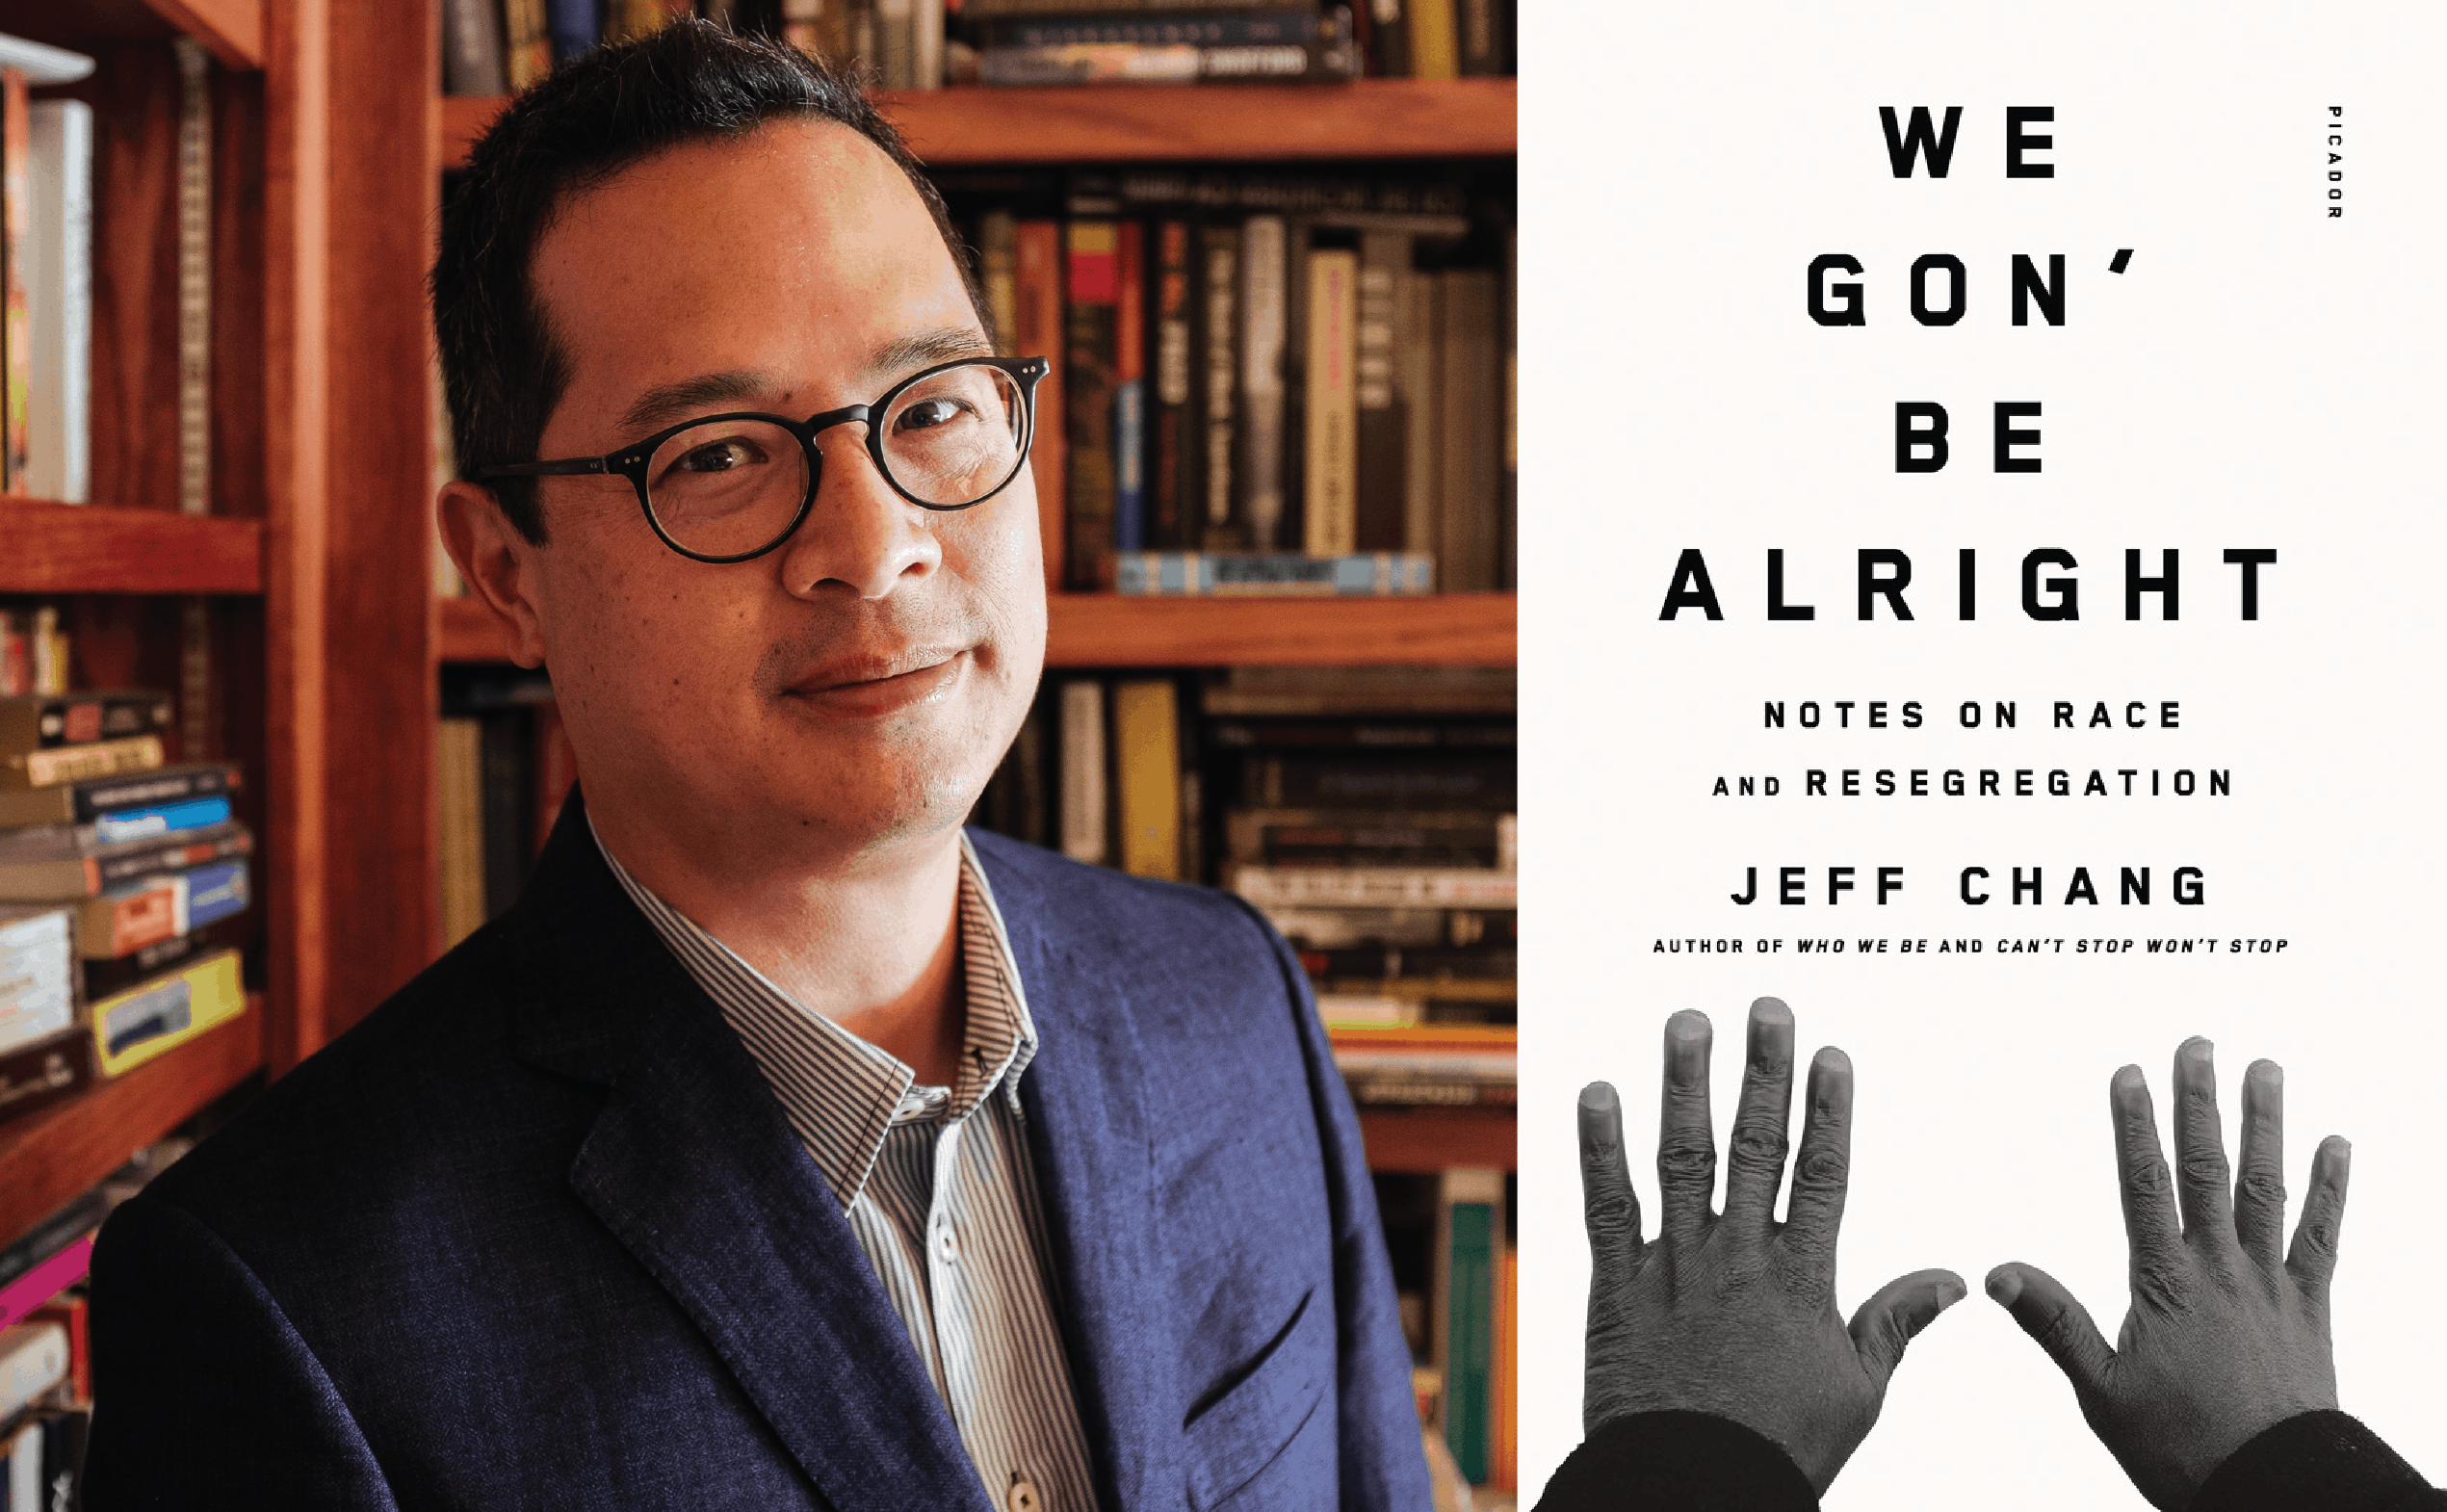 We Gon' Be Alright: Jeff Chang